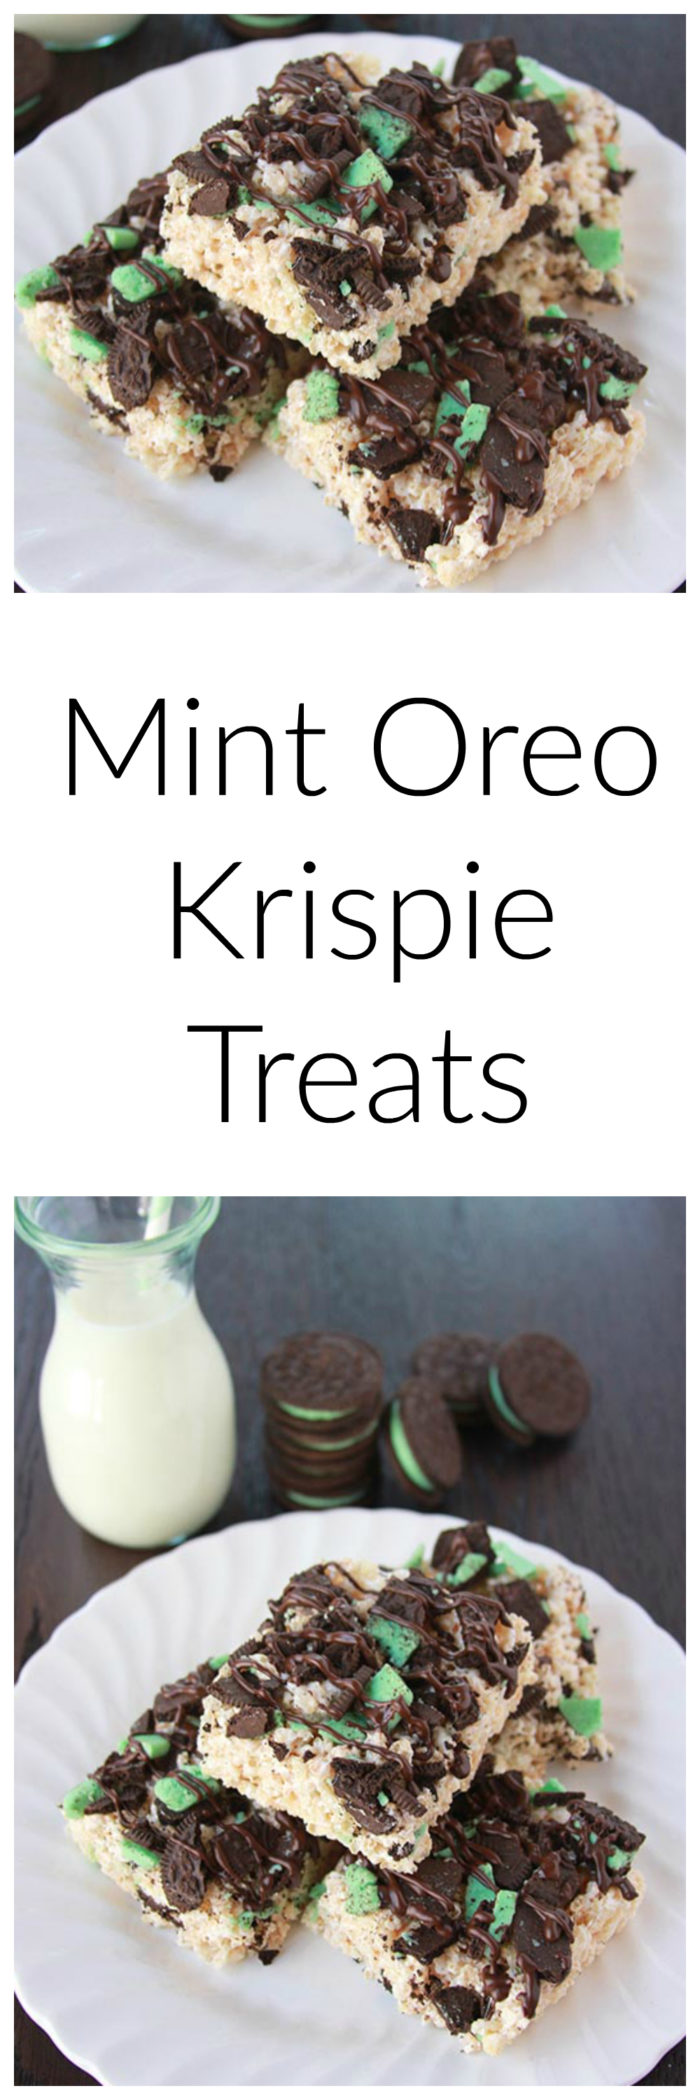 Mint Oreo Krispie Treats is a fun and festive treat for St. Patricks Day! www.cookingwithruthie.com